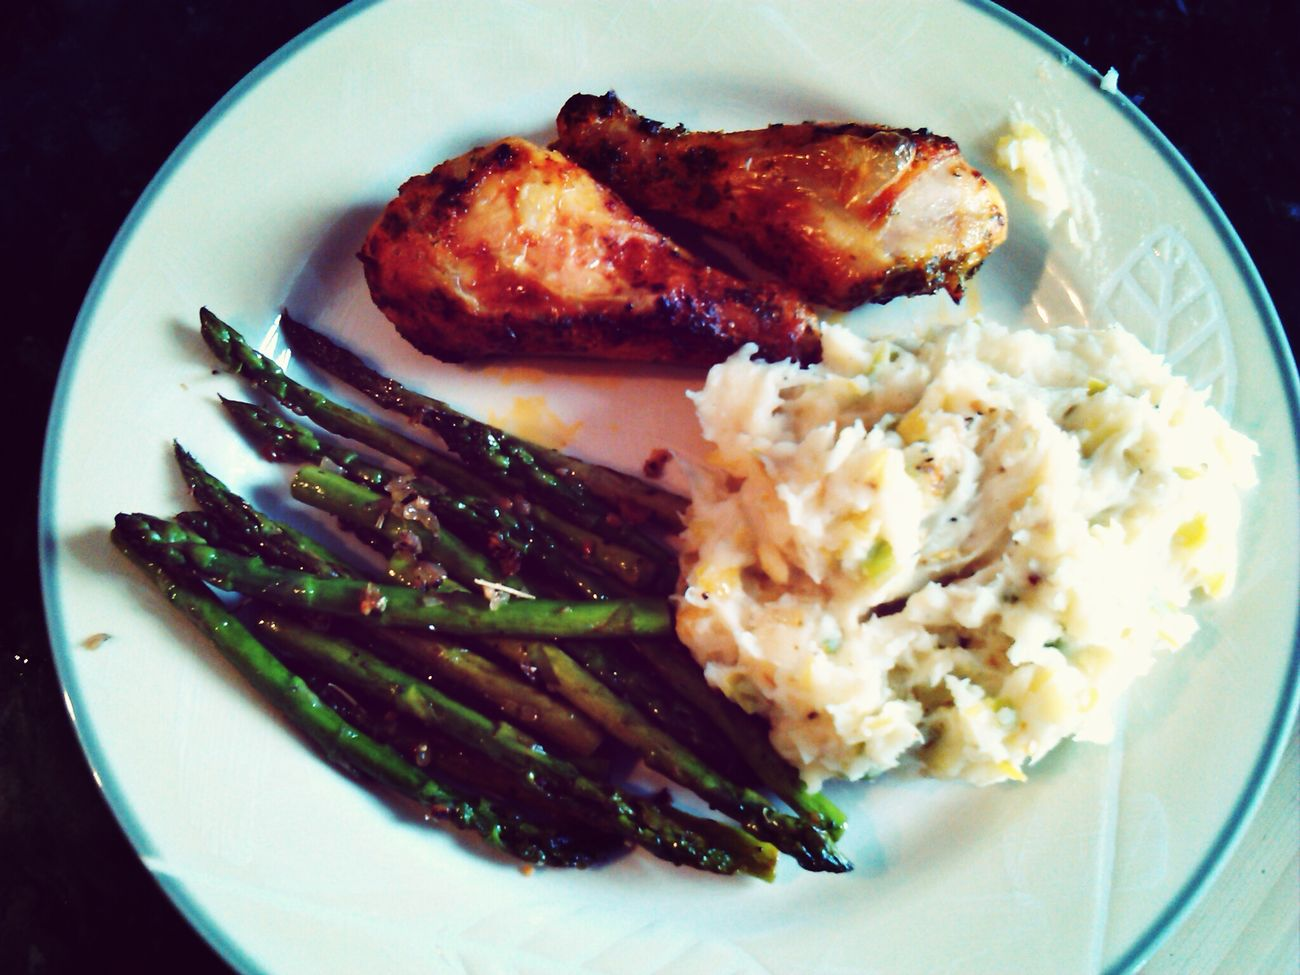 Dinner! Marinated Chicken, Fennel & Leek Mashed Potatoes, And Sauteed Asparagus...  YUM!!